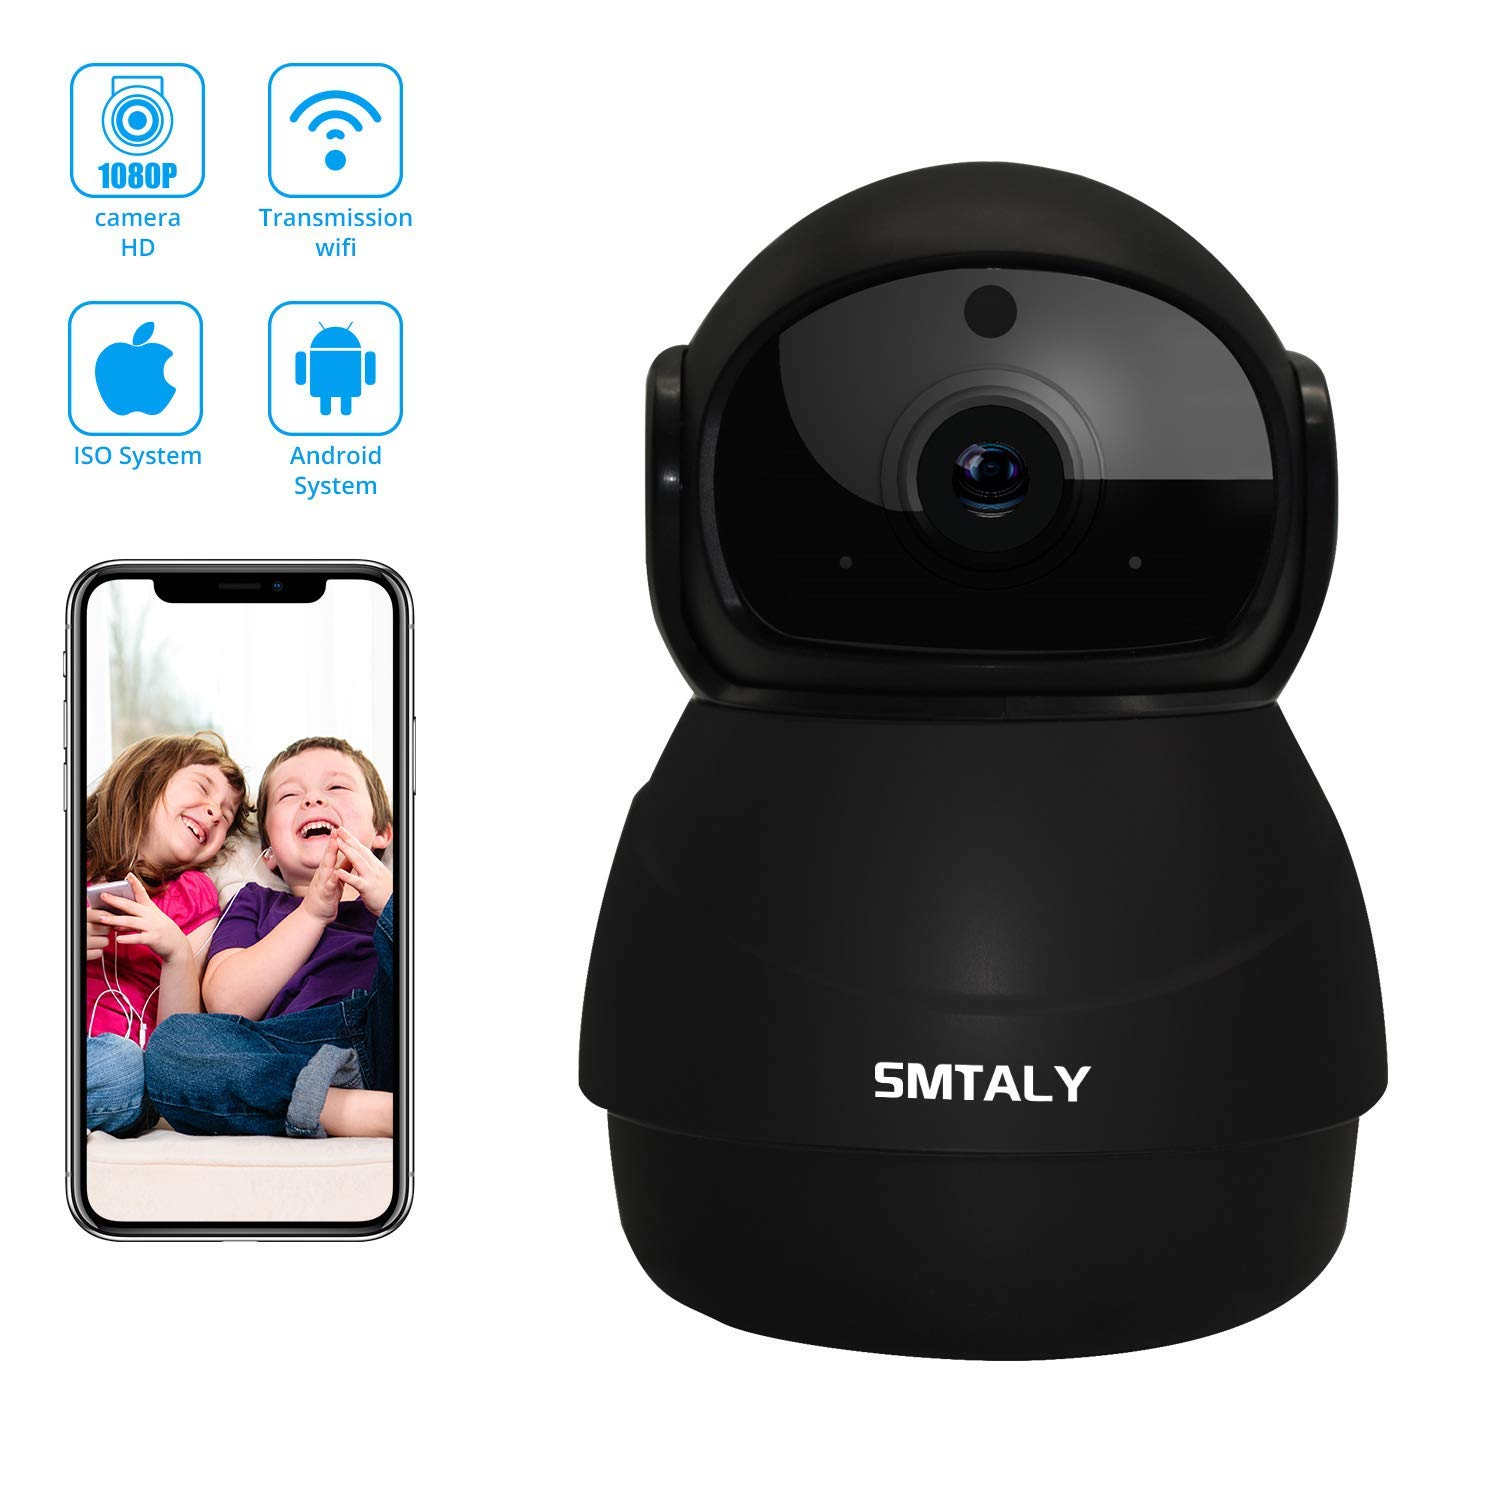 SMTALY Baby Monitor with Camera and Audio 1080P Panoramic Viewing Surveillance Camera with Night Vision 2-Way Audio Auto-Cruise Motion Detection Wireless HD Dome Camera for Pet Baby Elder